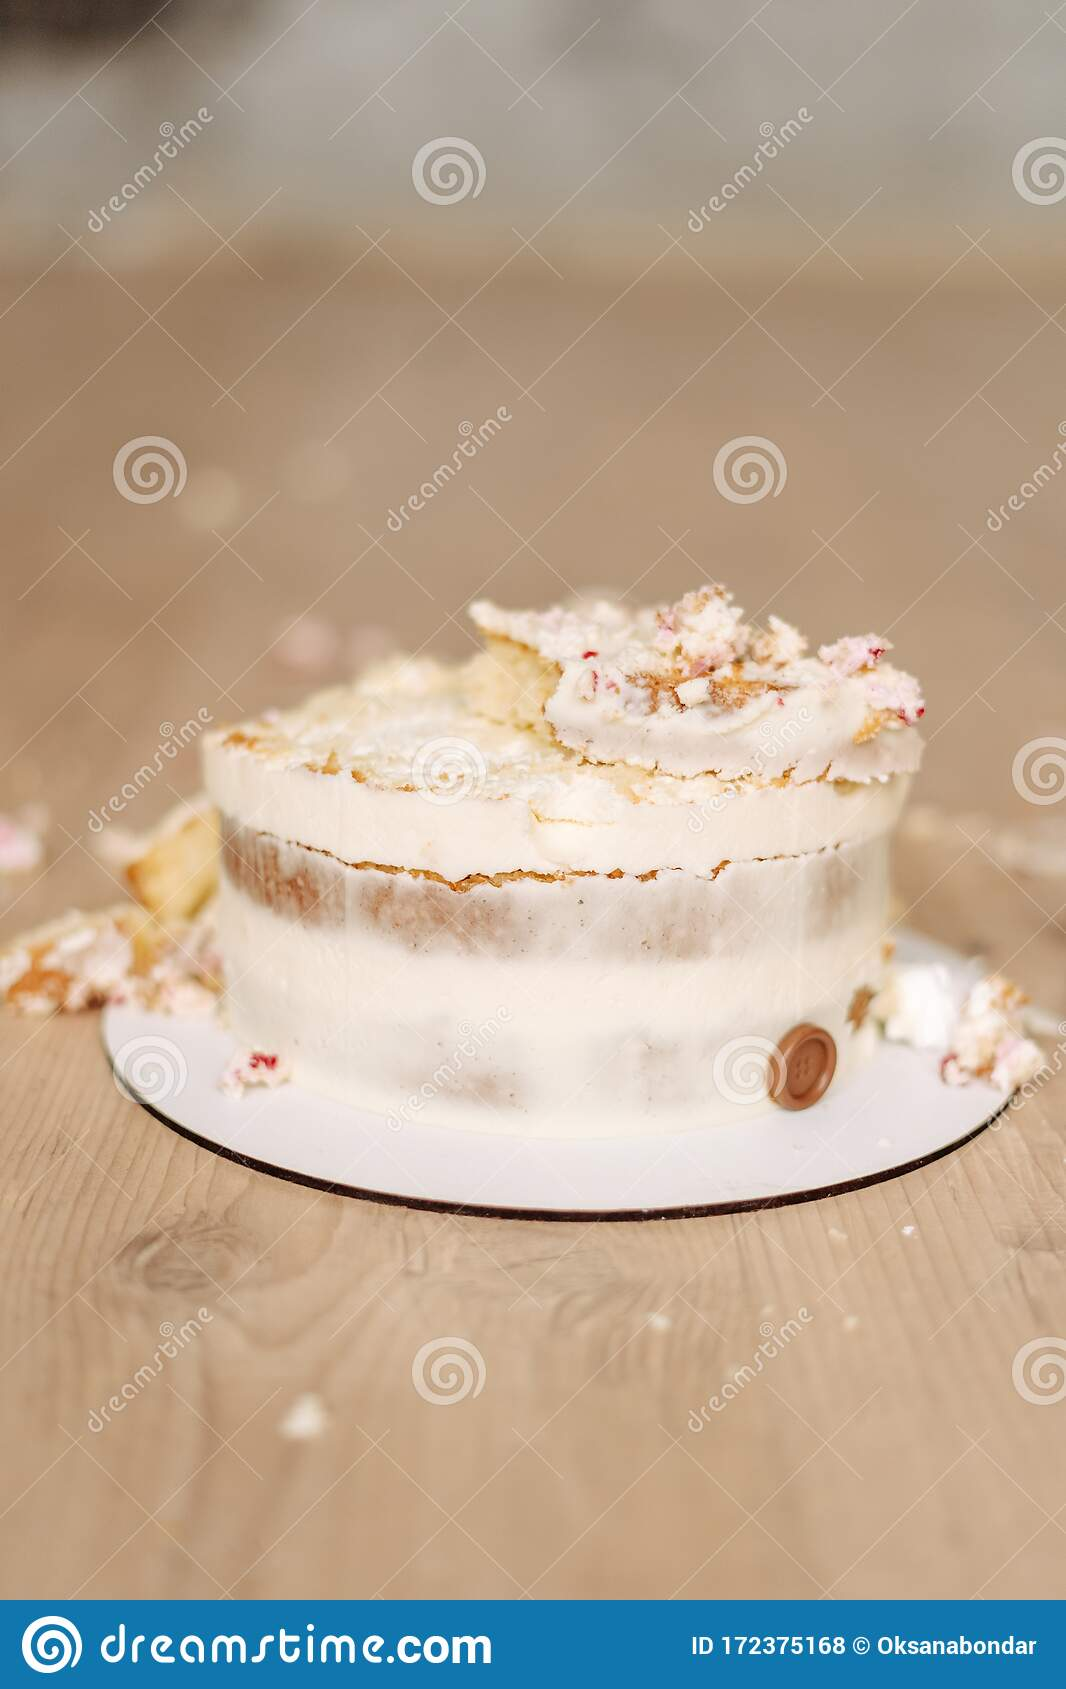 Smashed Cake On Wooden Floor For 1st Birthday Stock Photo Image